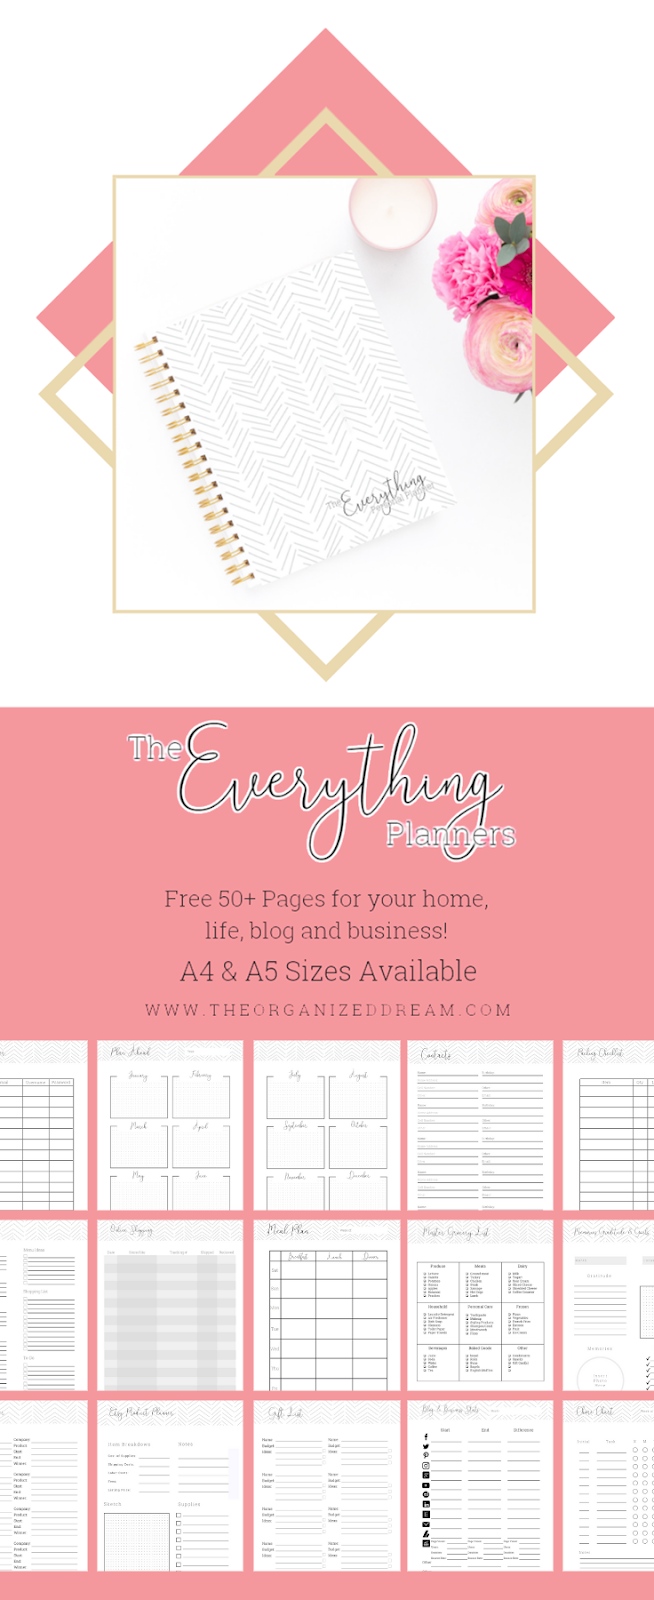 Free Planner Printable Pages - The All New Everything Planners featuring 50+ Pages! • The Organized Dream